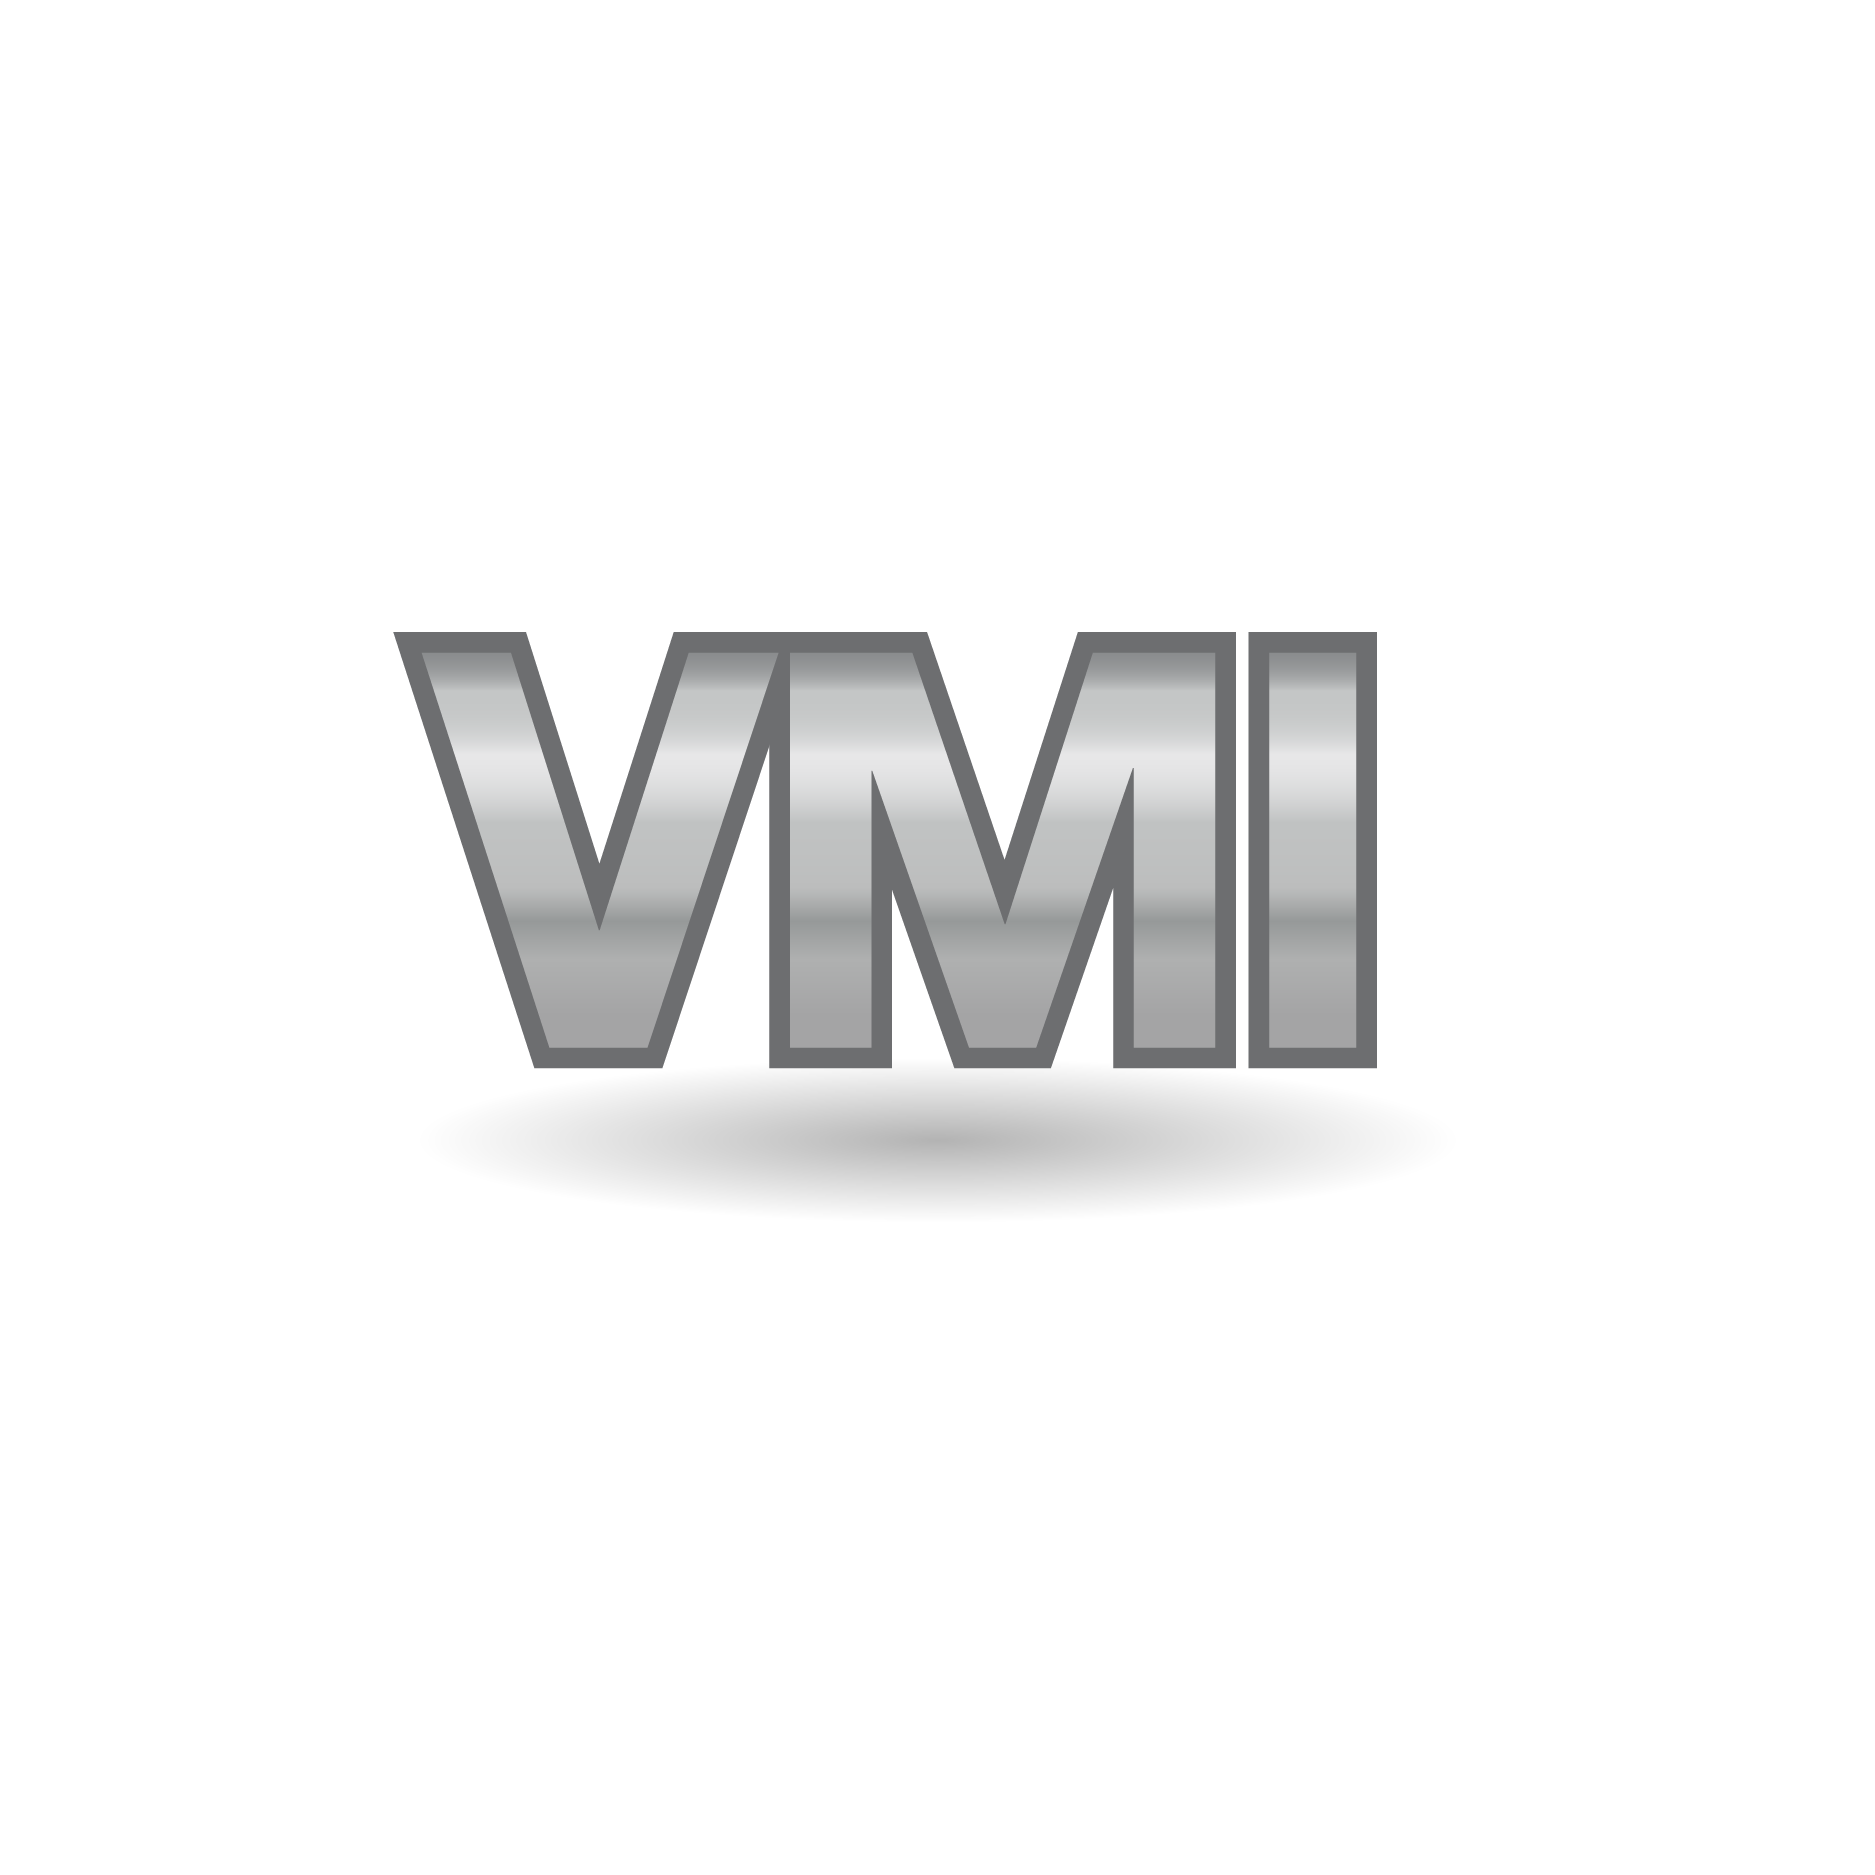 Is a VMI strategy right for me?